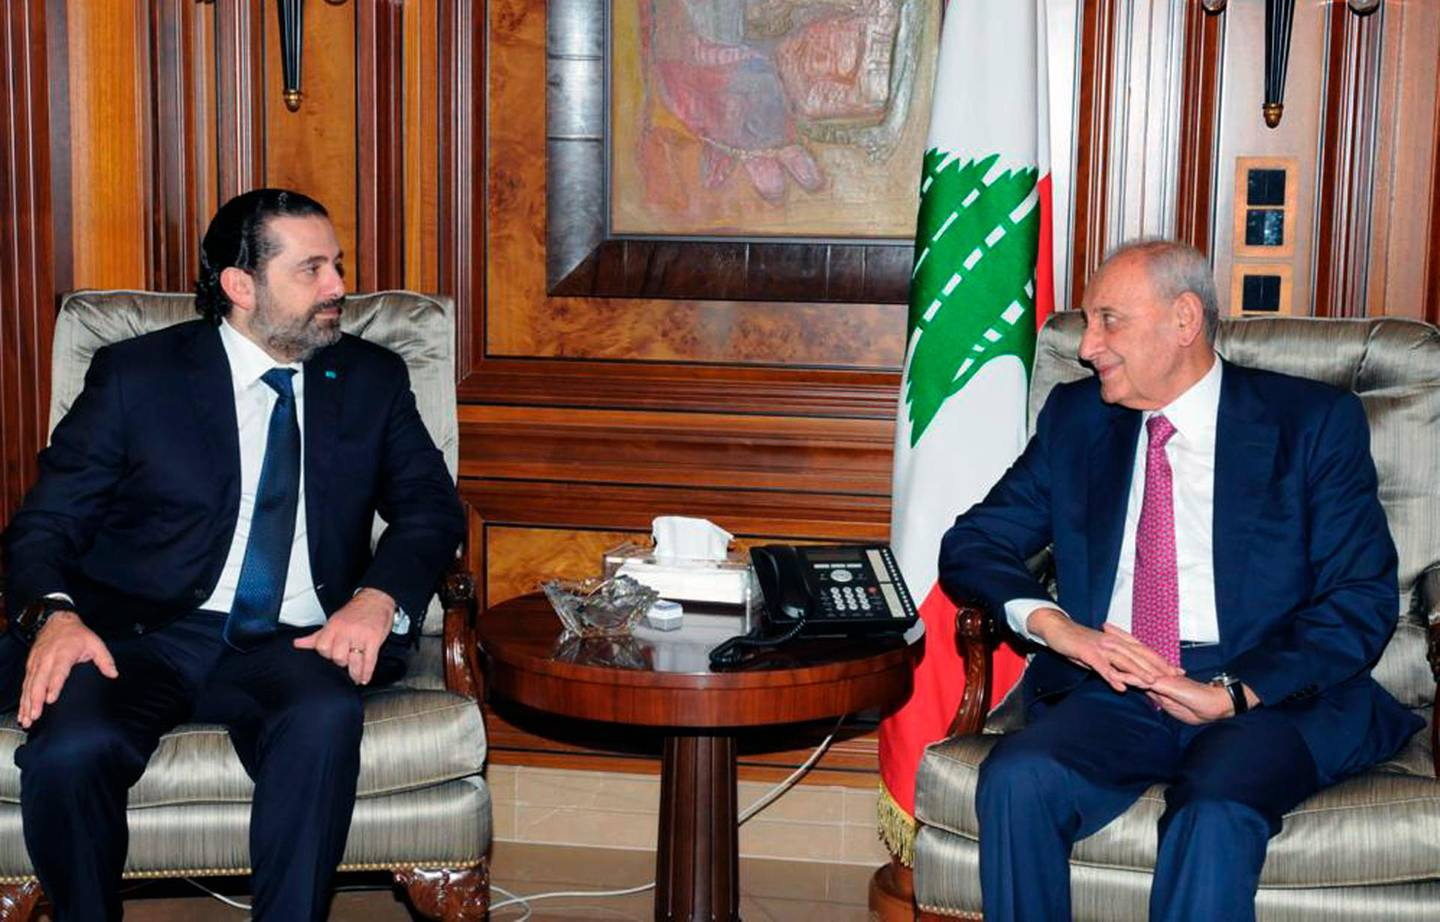 In this photo released by Lebanon's official government photographer Dalati Nohra, Parliament Speaker Nabih Berri, right, meets with outgoing Prime Minister Saad Hariri, in Beirut, Lebanon, Saturday, Dec. 21, 2019. Lebanon's newly designated prime minister says he plans to form a government of experts and independents to deal with the country's crippling economic crisis. Hassan Diab spoke to reporters Friday, following a meeting with former Prime Minister Saad Hariri, a day after he was asked by the president to form the country's next government. (Dalati Nohra via AP)